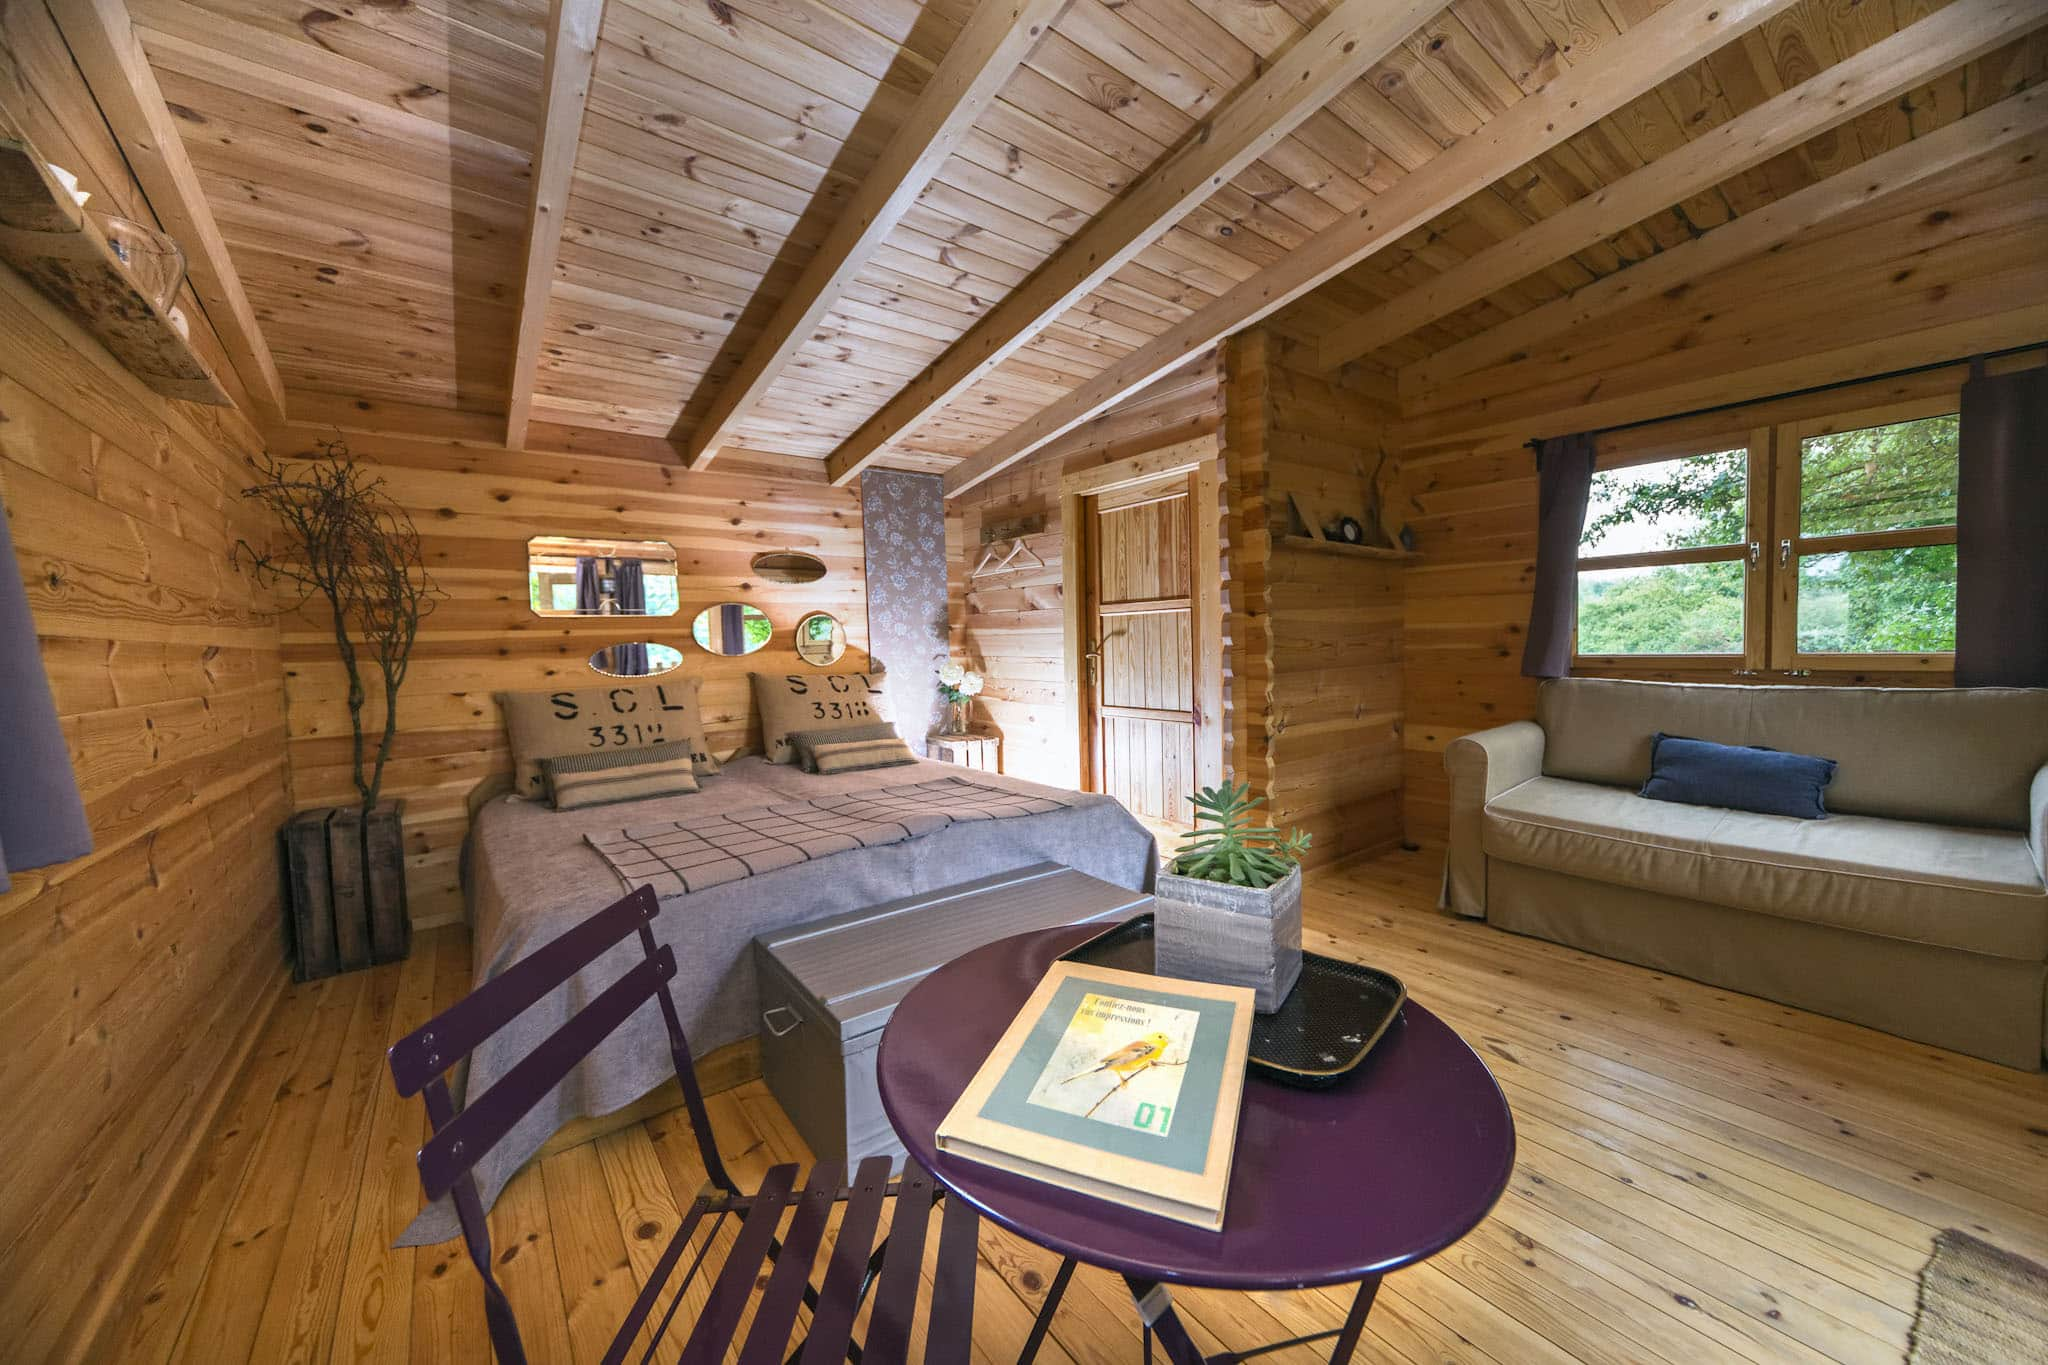 photos Sparrowhawk and falcon cabins (single beds)